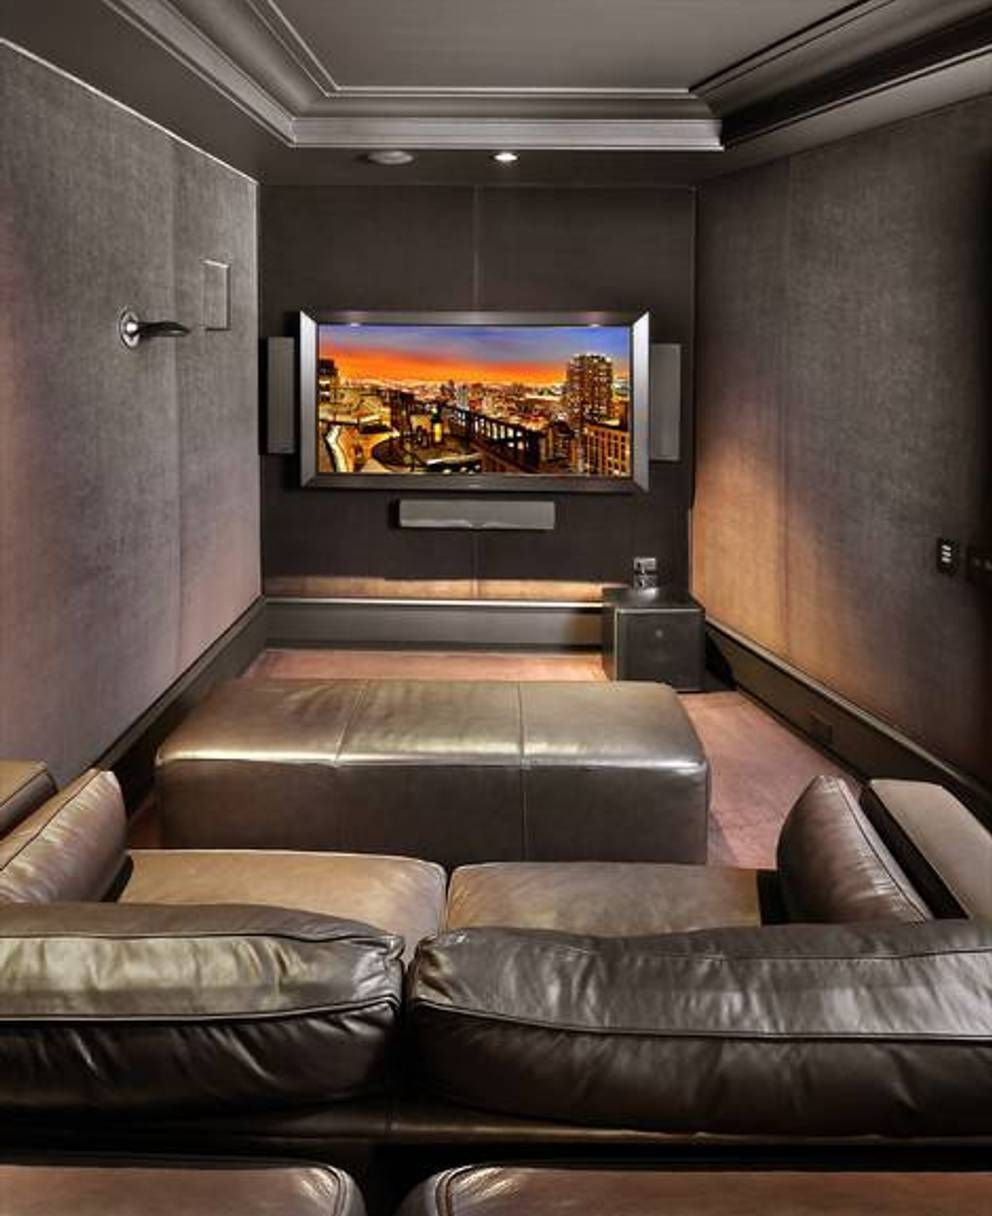 home design and decor small home theater room ideas modern small home theater room - Home Design Small Spaces Ideas